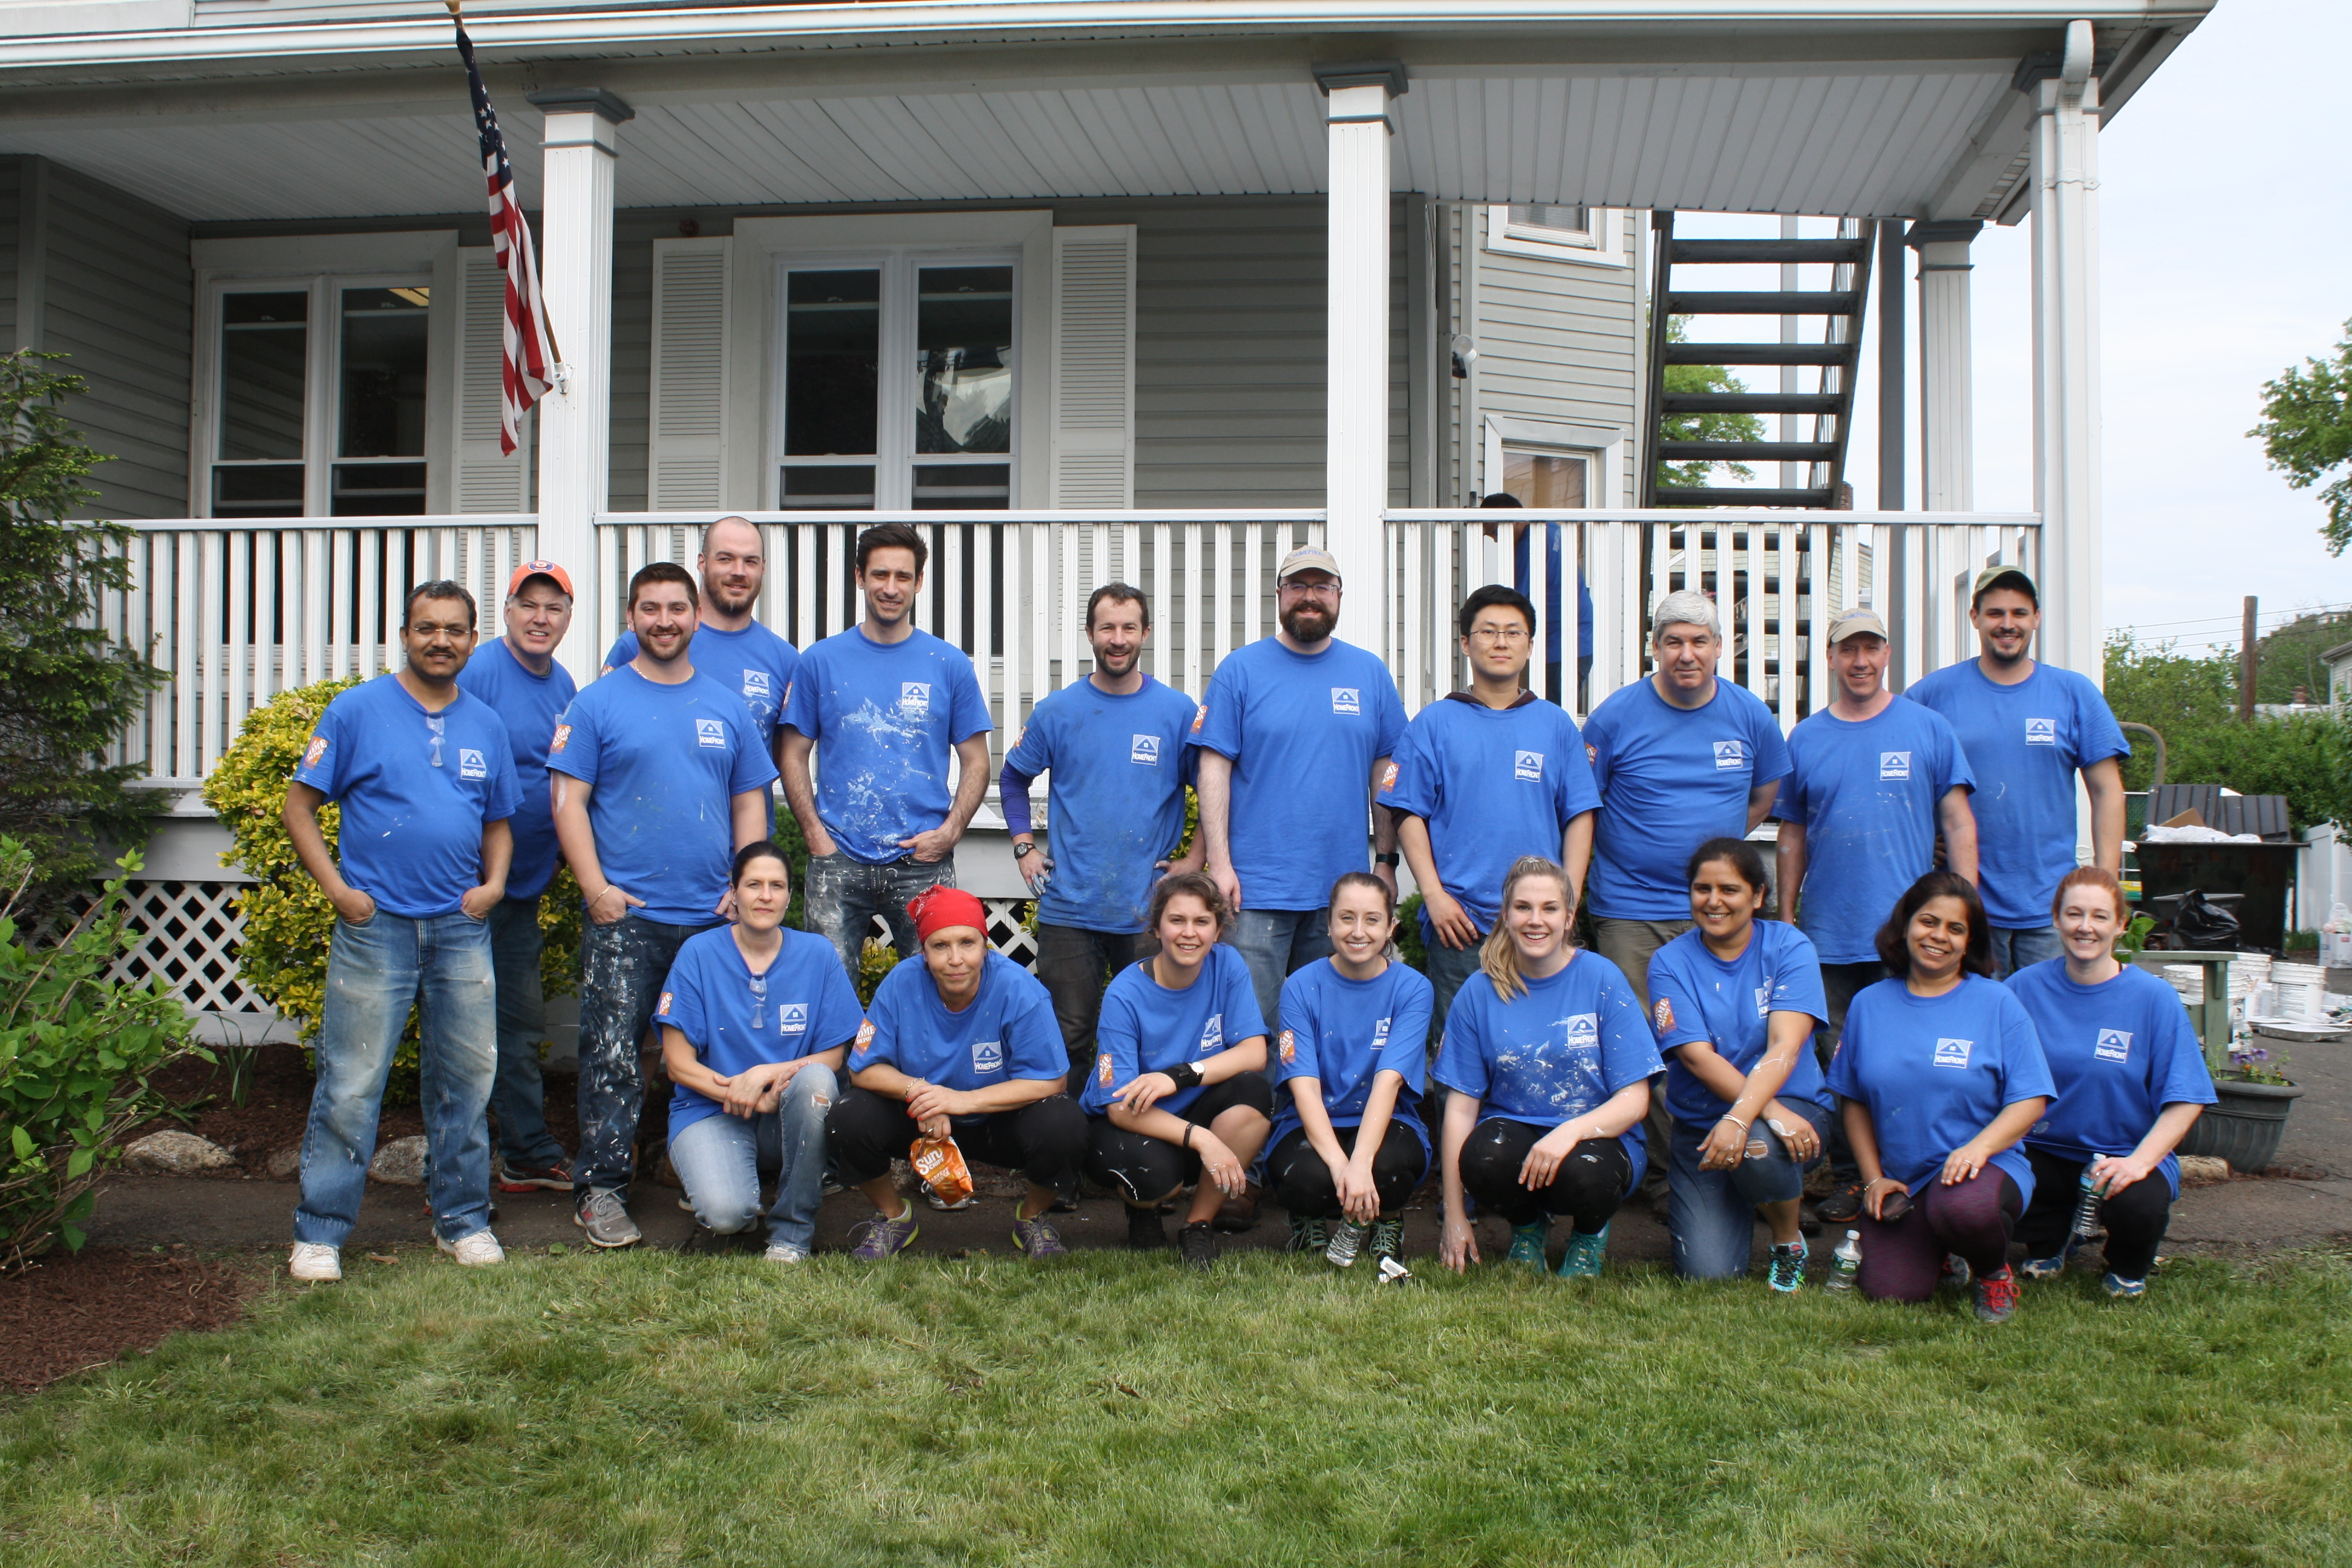 Volunteers at a Domus property for painting, construction, and gardening